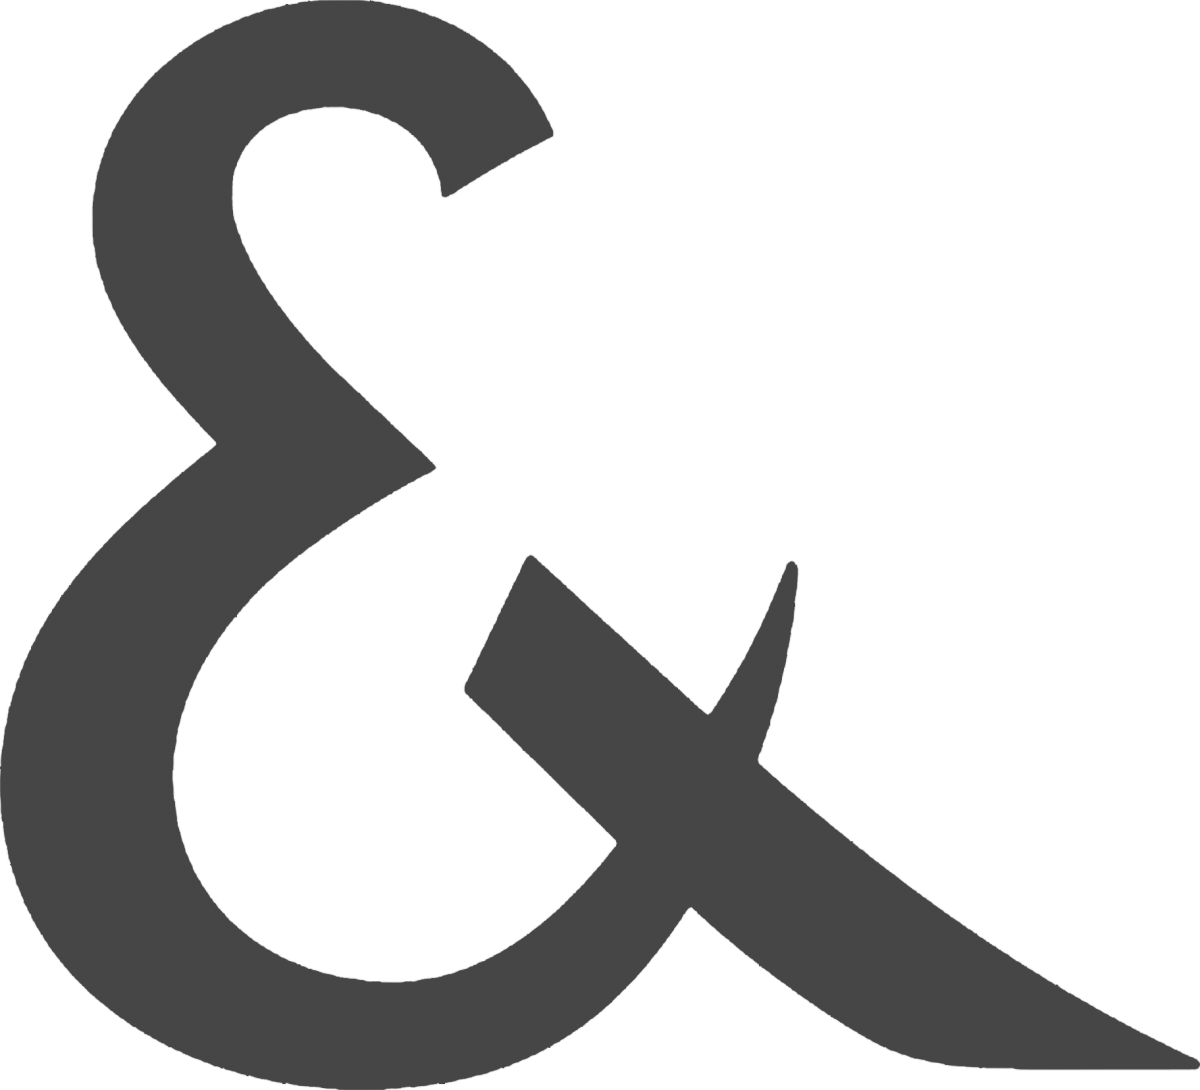 Media Library - Ampersand dark grey smbol